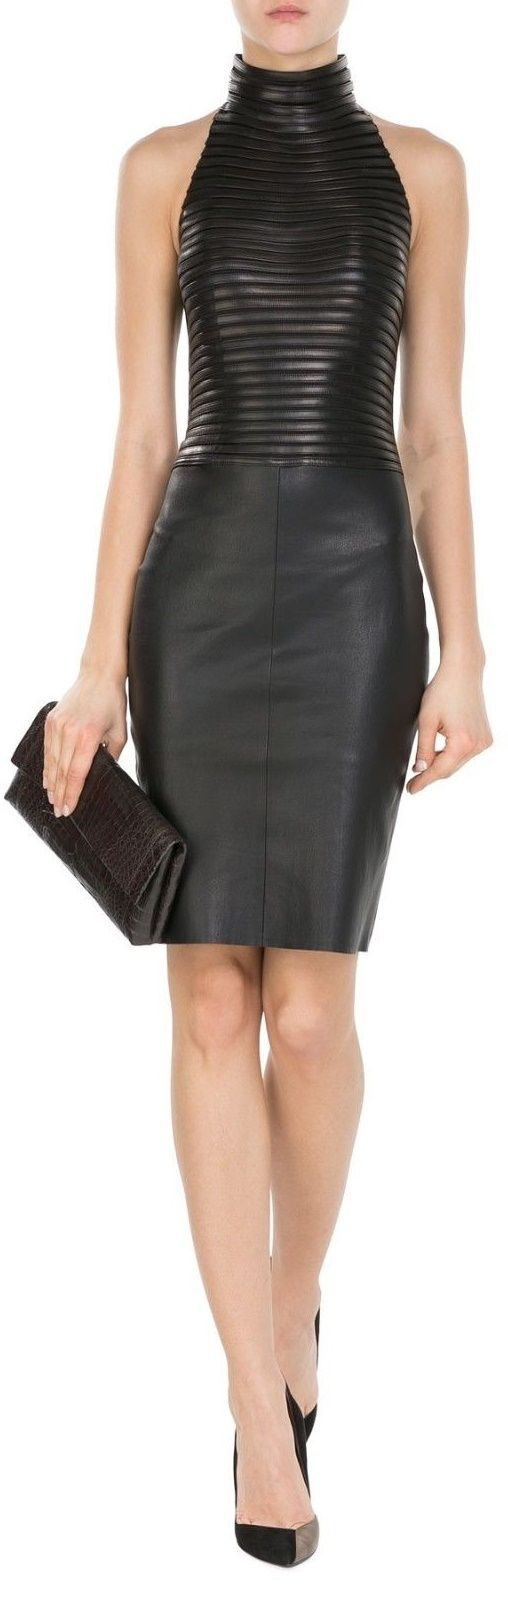 Luxurious Leather Dress